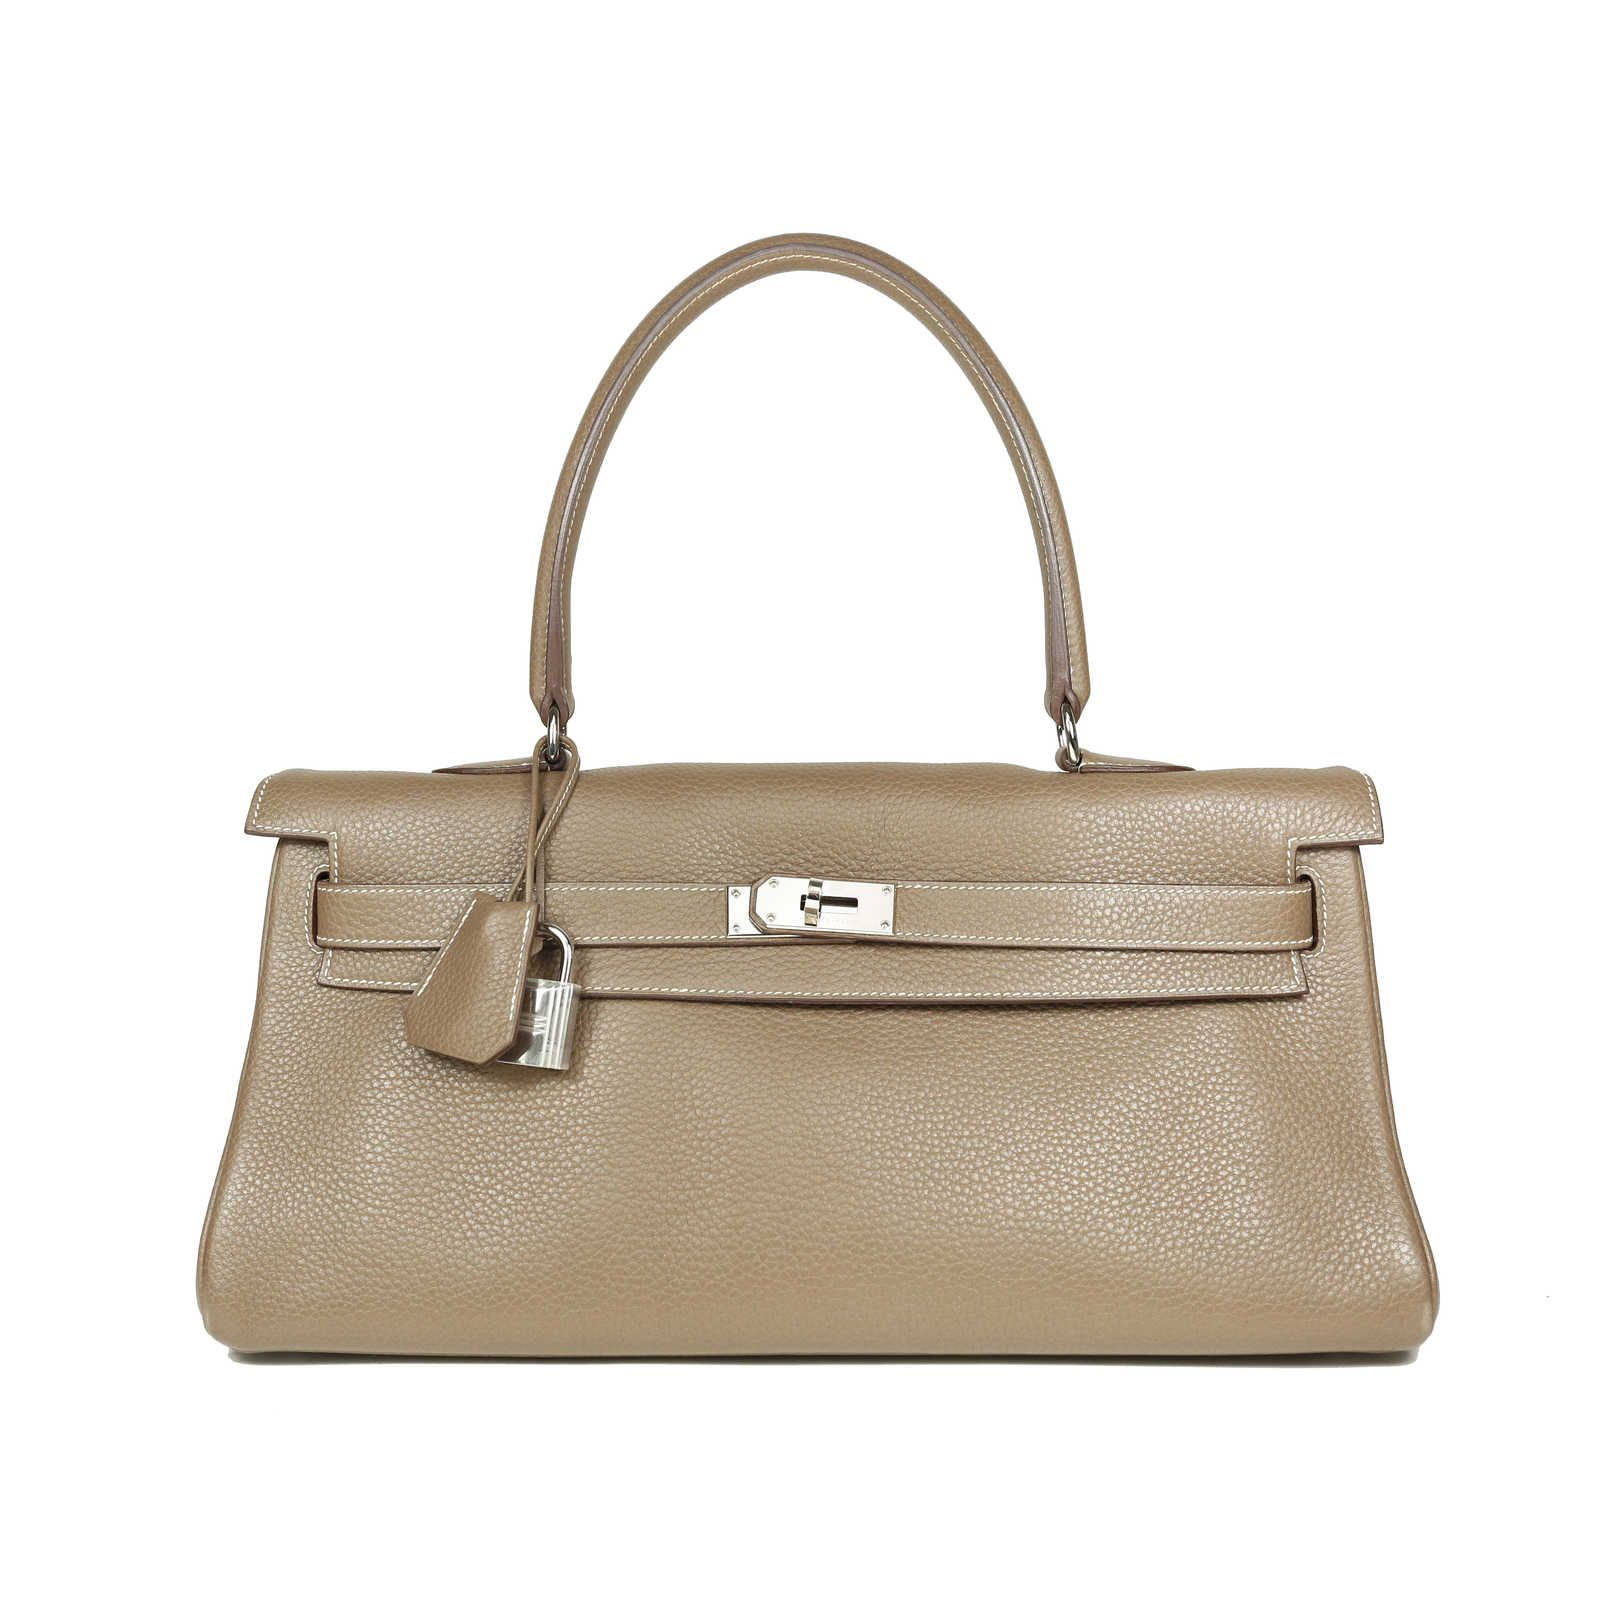 827b306eca Created by Jean Paul Gaultier during his tenure at Hermès, this shoulder  Kelly is a modern take on the classic Kelly bag. This rare piece is crafted  in the ...